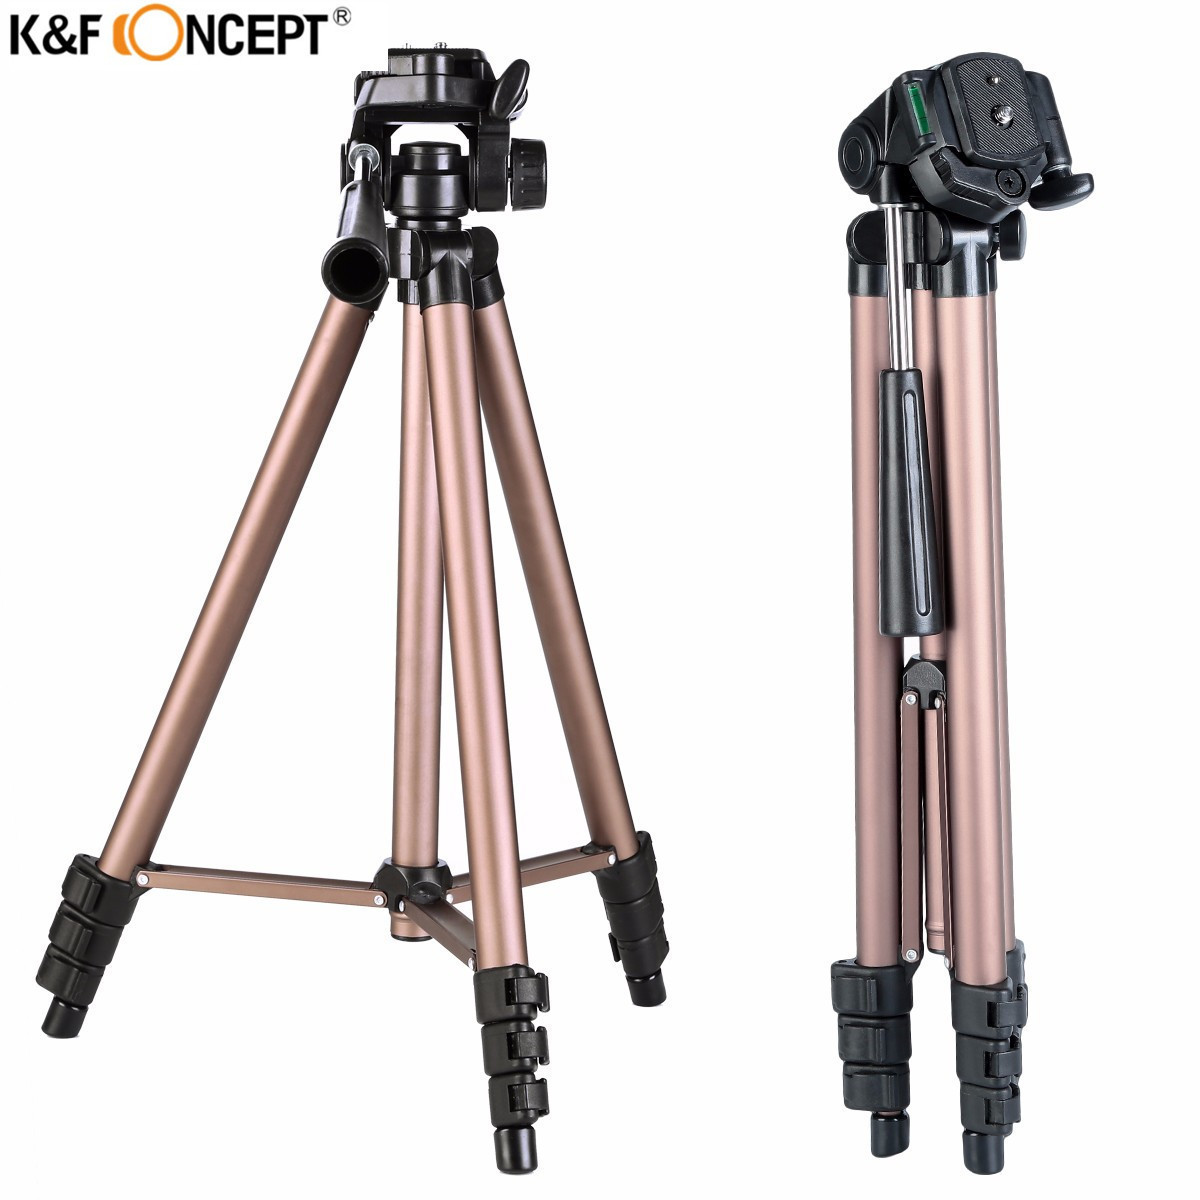 Newest K&F CONCEPT Professional Portable Alloy Camera Tripod With Pan Head Stand For Canon Nikon Sony SLR DSLR Digital Camera(China (Mainland))